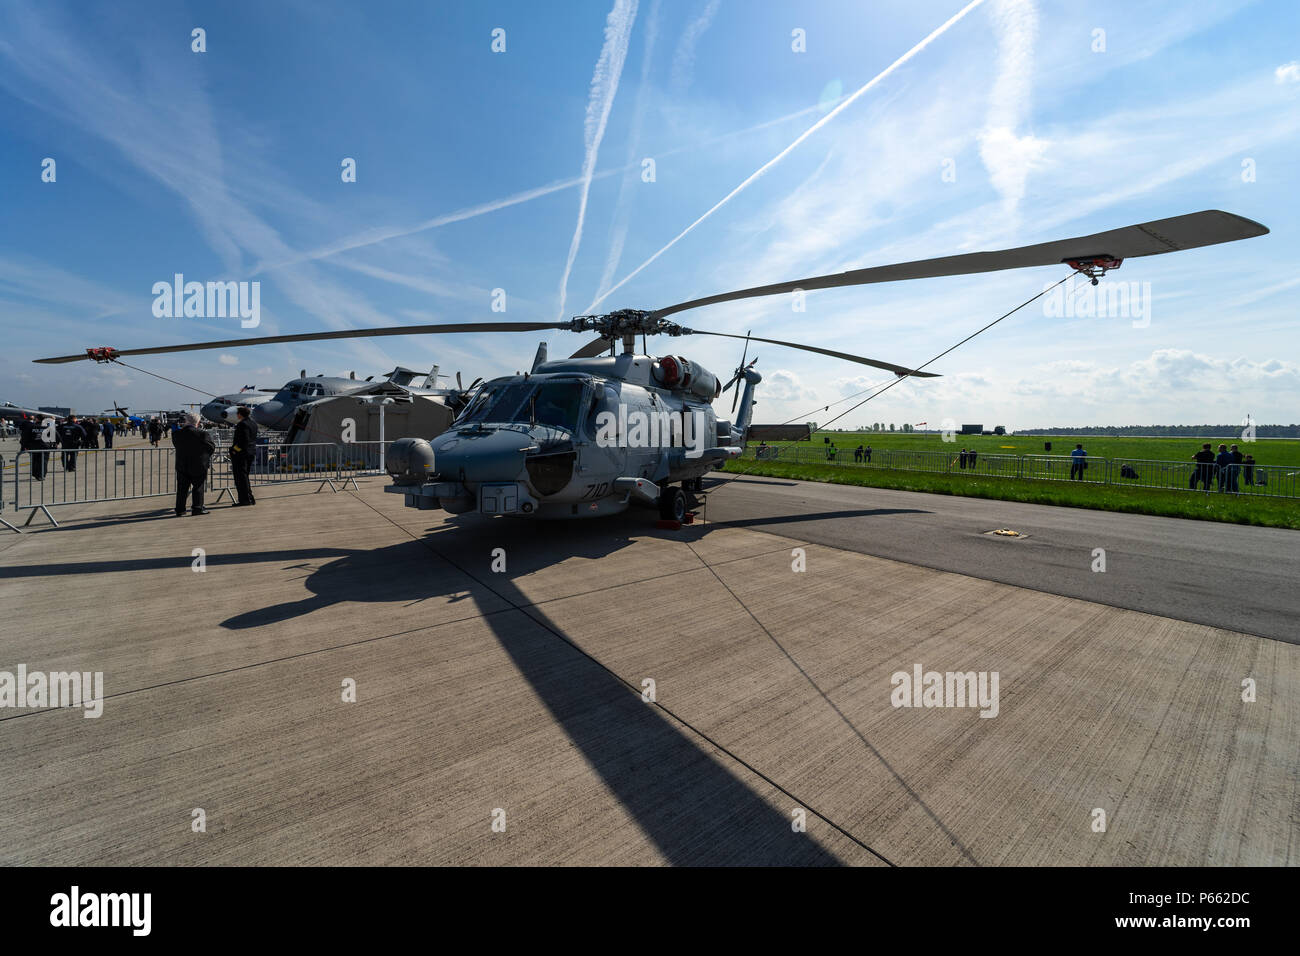 BERLIN - APRIL 27, 2018: The medium-lift utility helicopter Sikorsky UH-60 Black Hawk on the airfield. Exhibition ILA Berlin Air Show 2018. - Stock Image